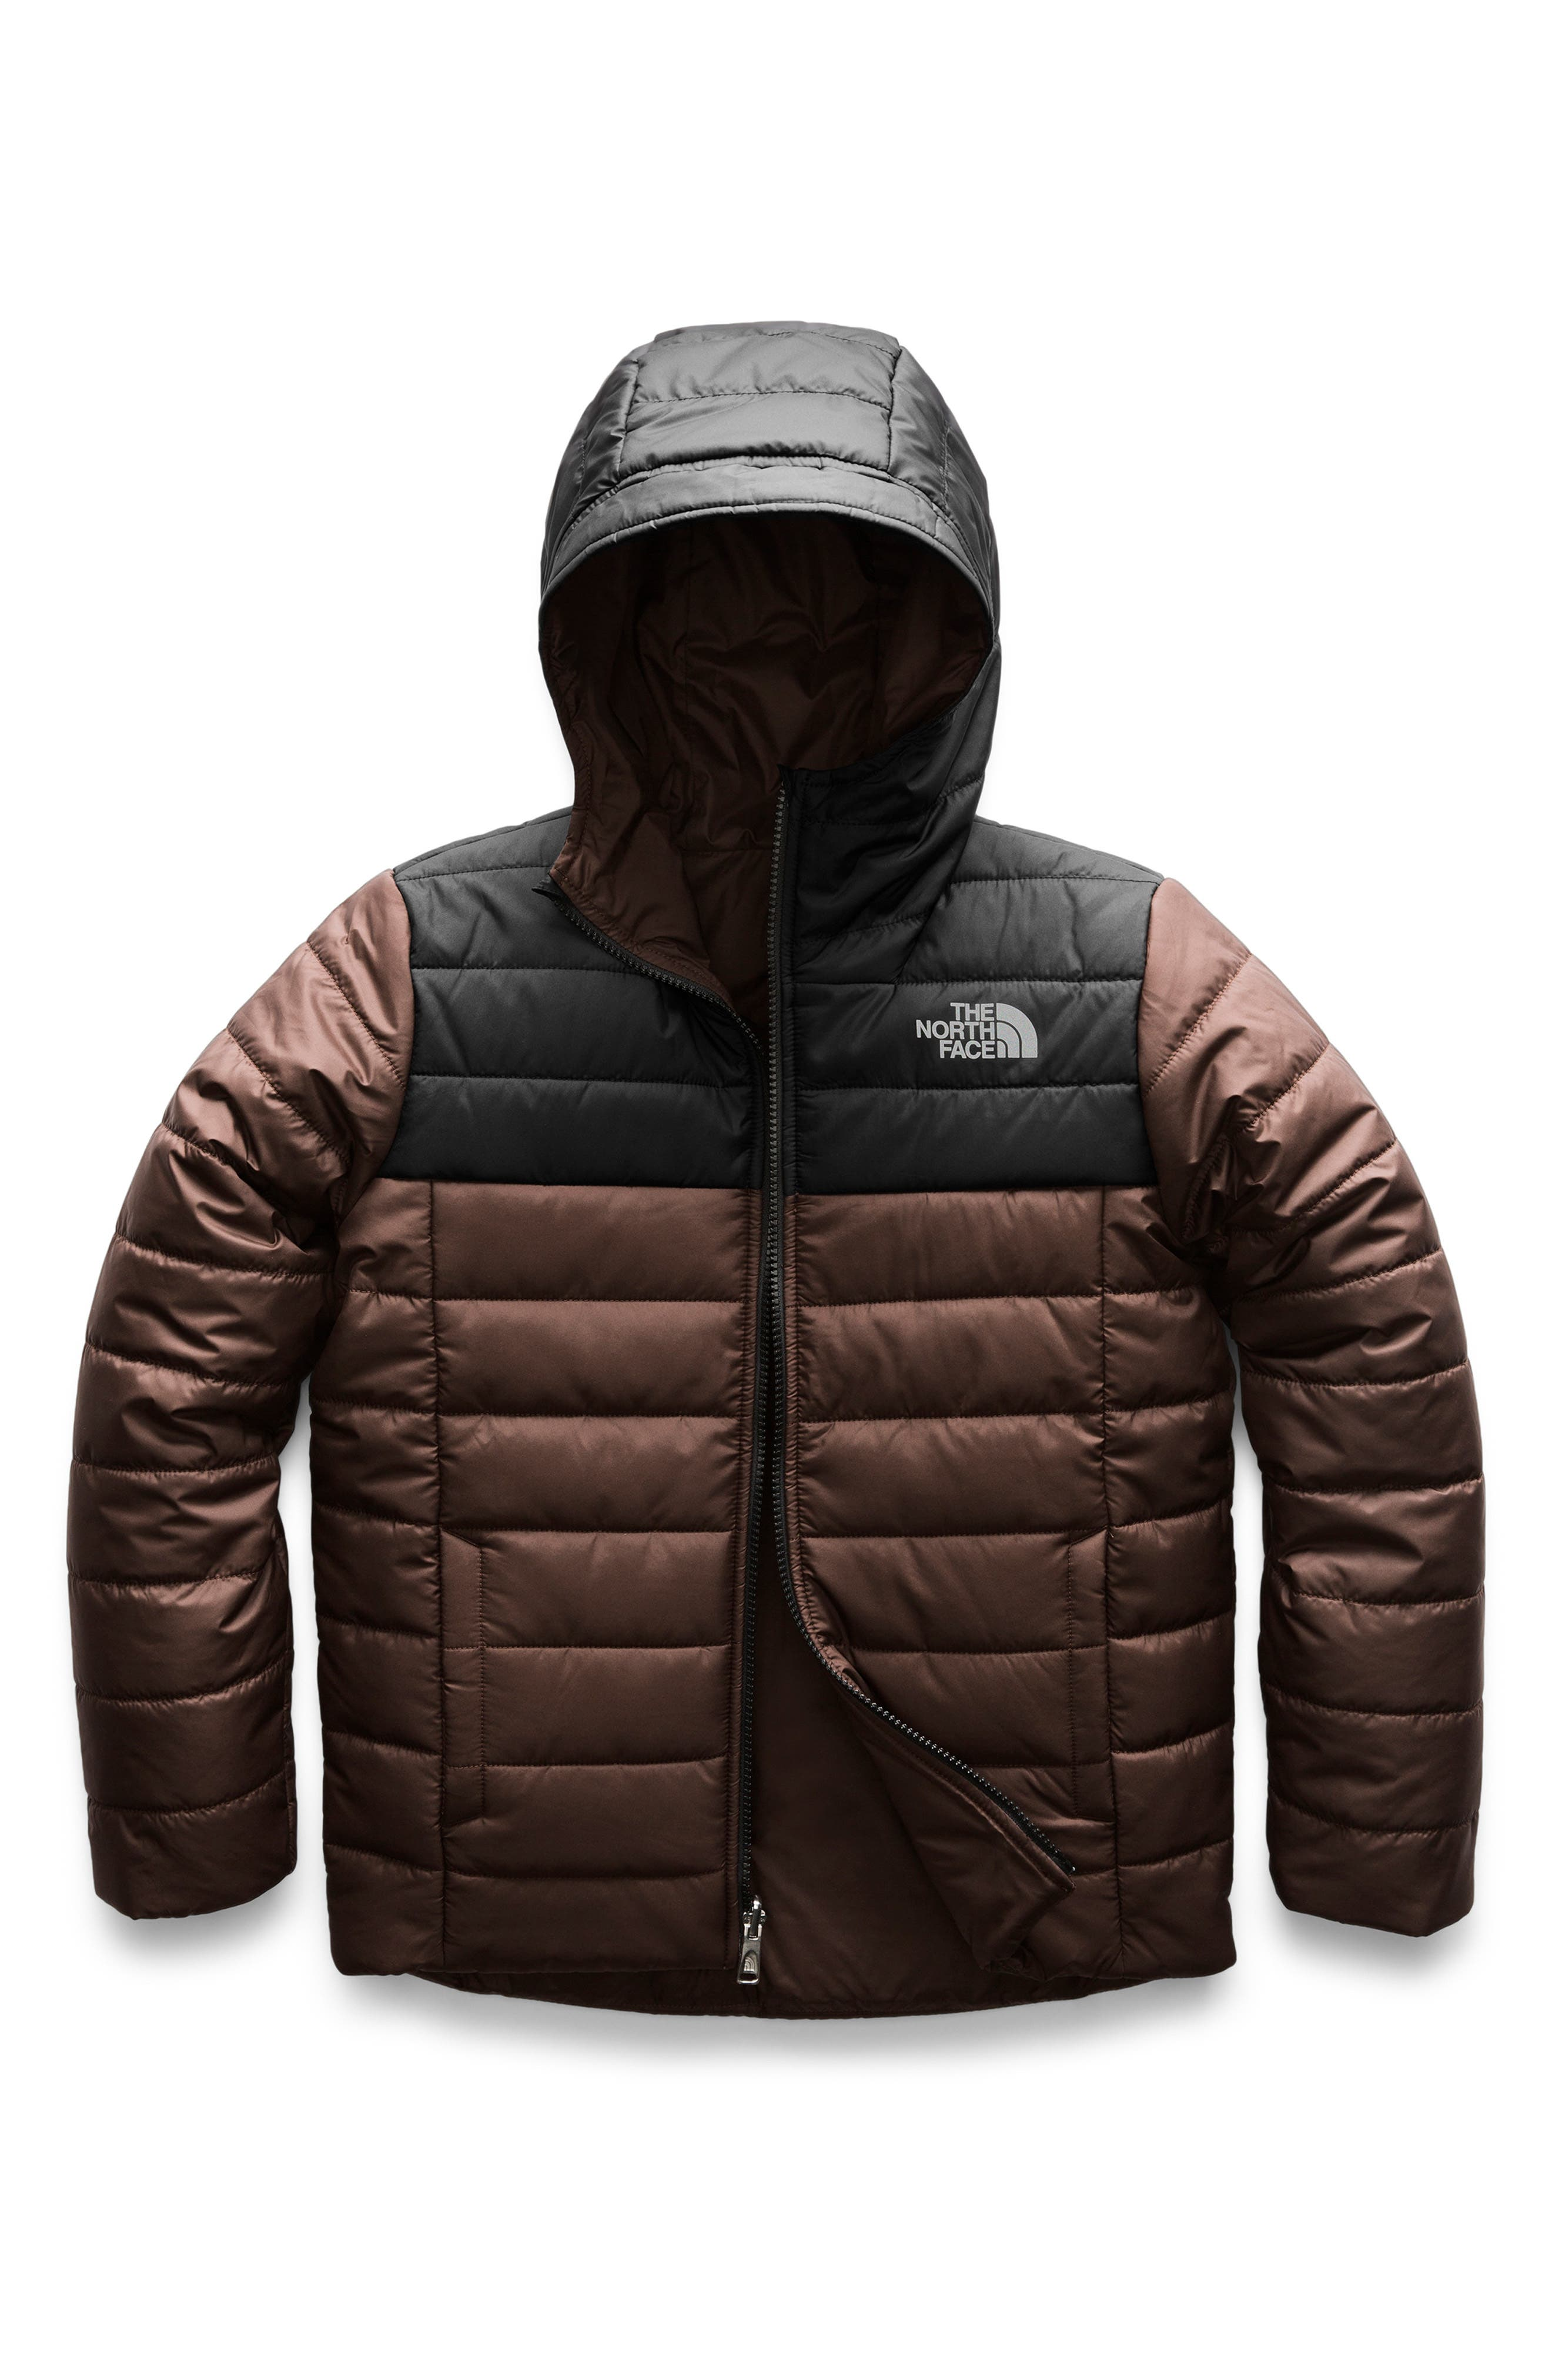 Boys The North Face Perrito Reversible Water Repellent Heetseaker(TM) Insulated Jacket Size L (1416)  Brown